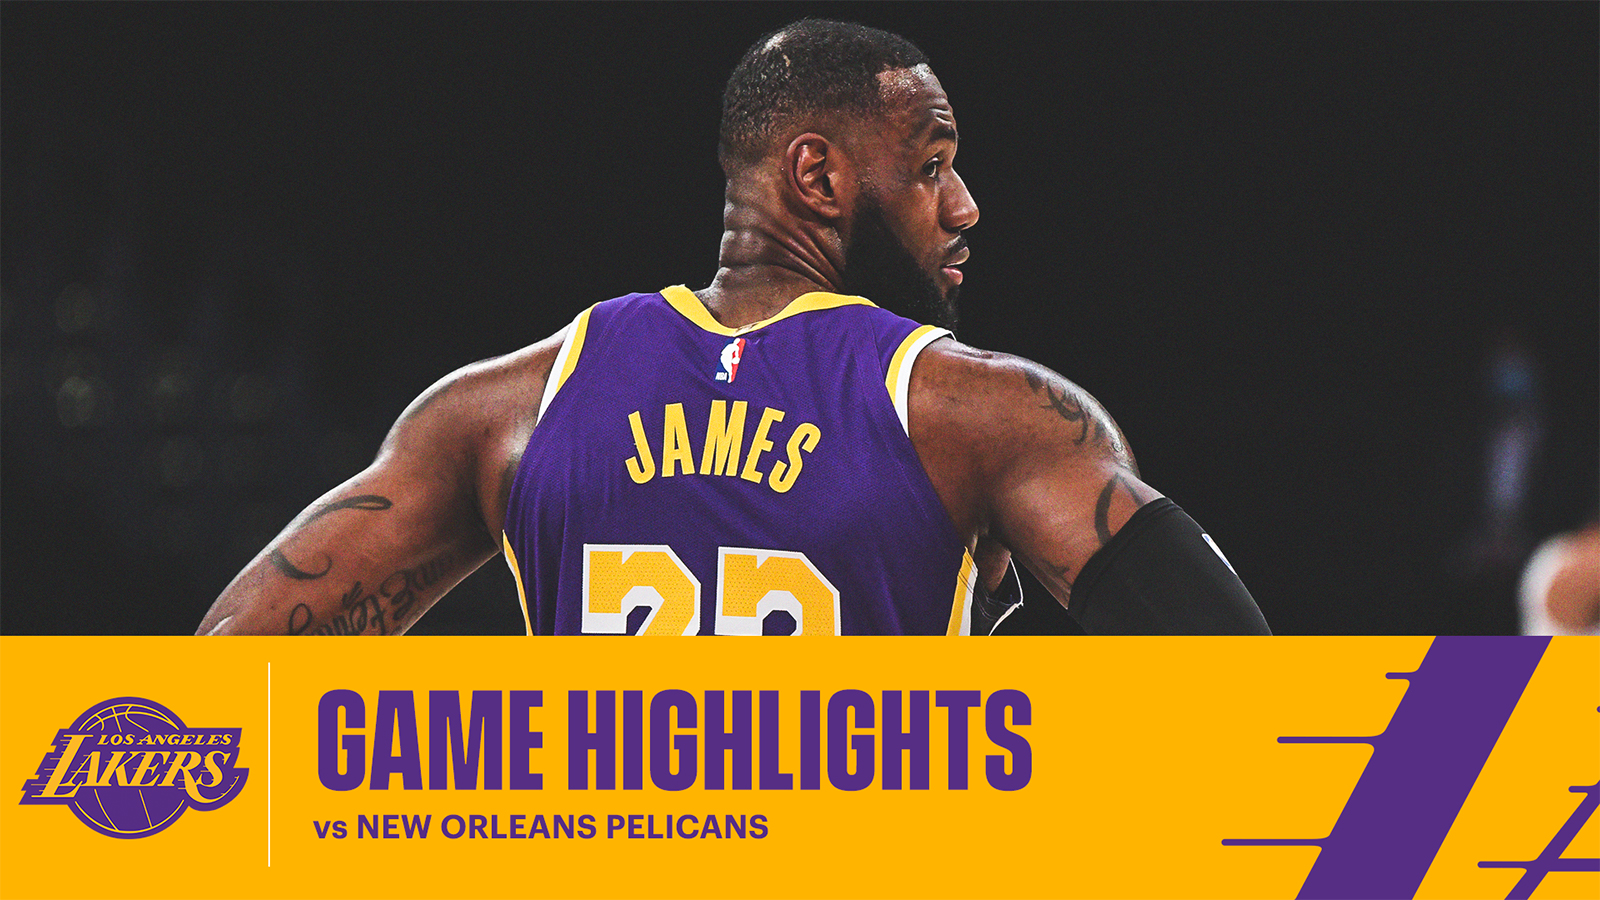 HIGHLIGHTS | LeBron James (21 pts, 11 ast, 8 reb) vs New Orleans Pelicans